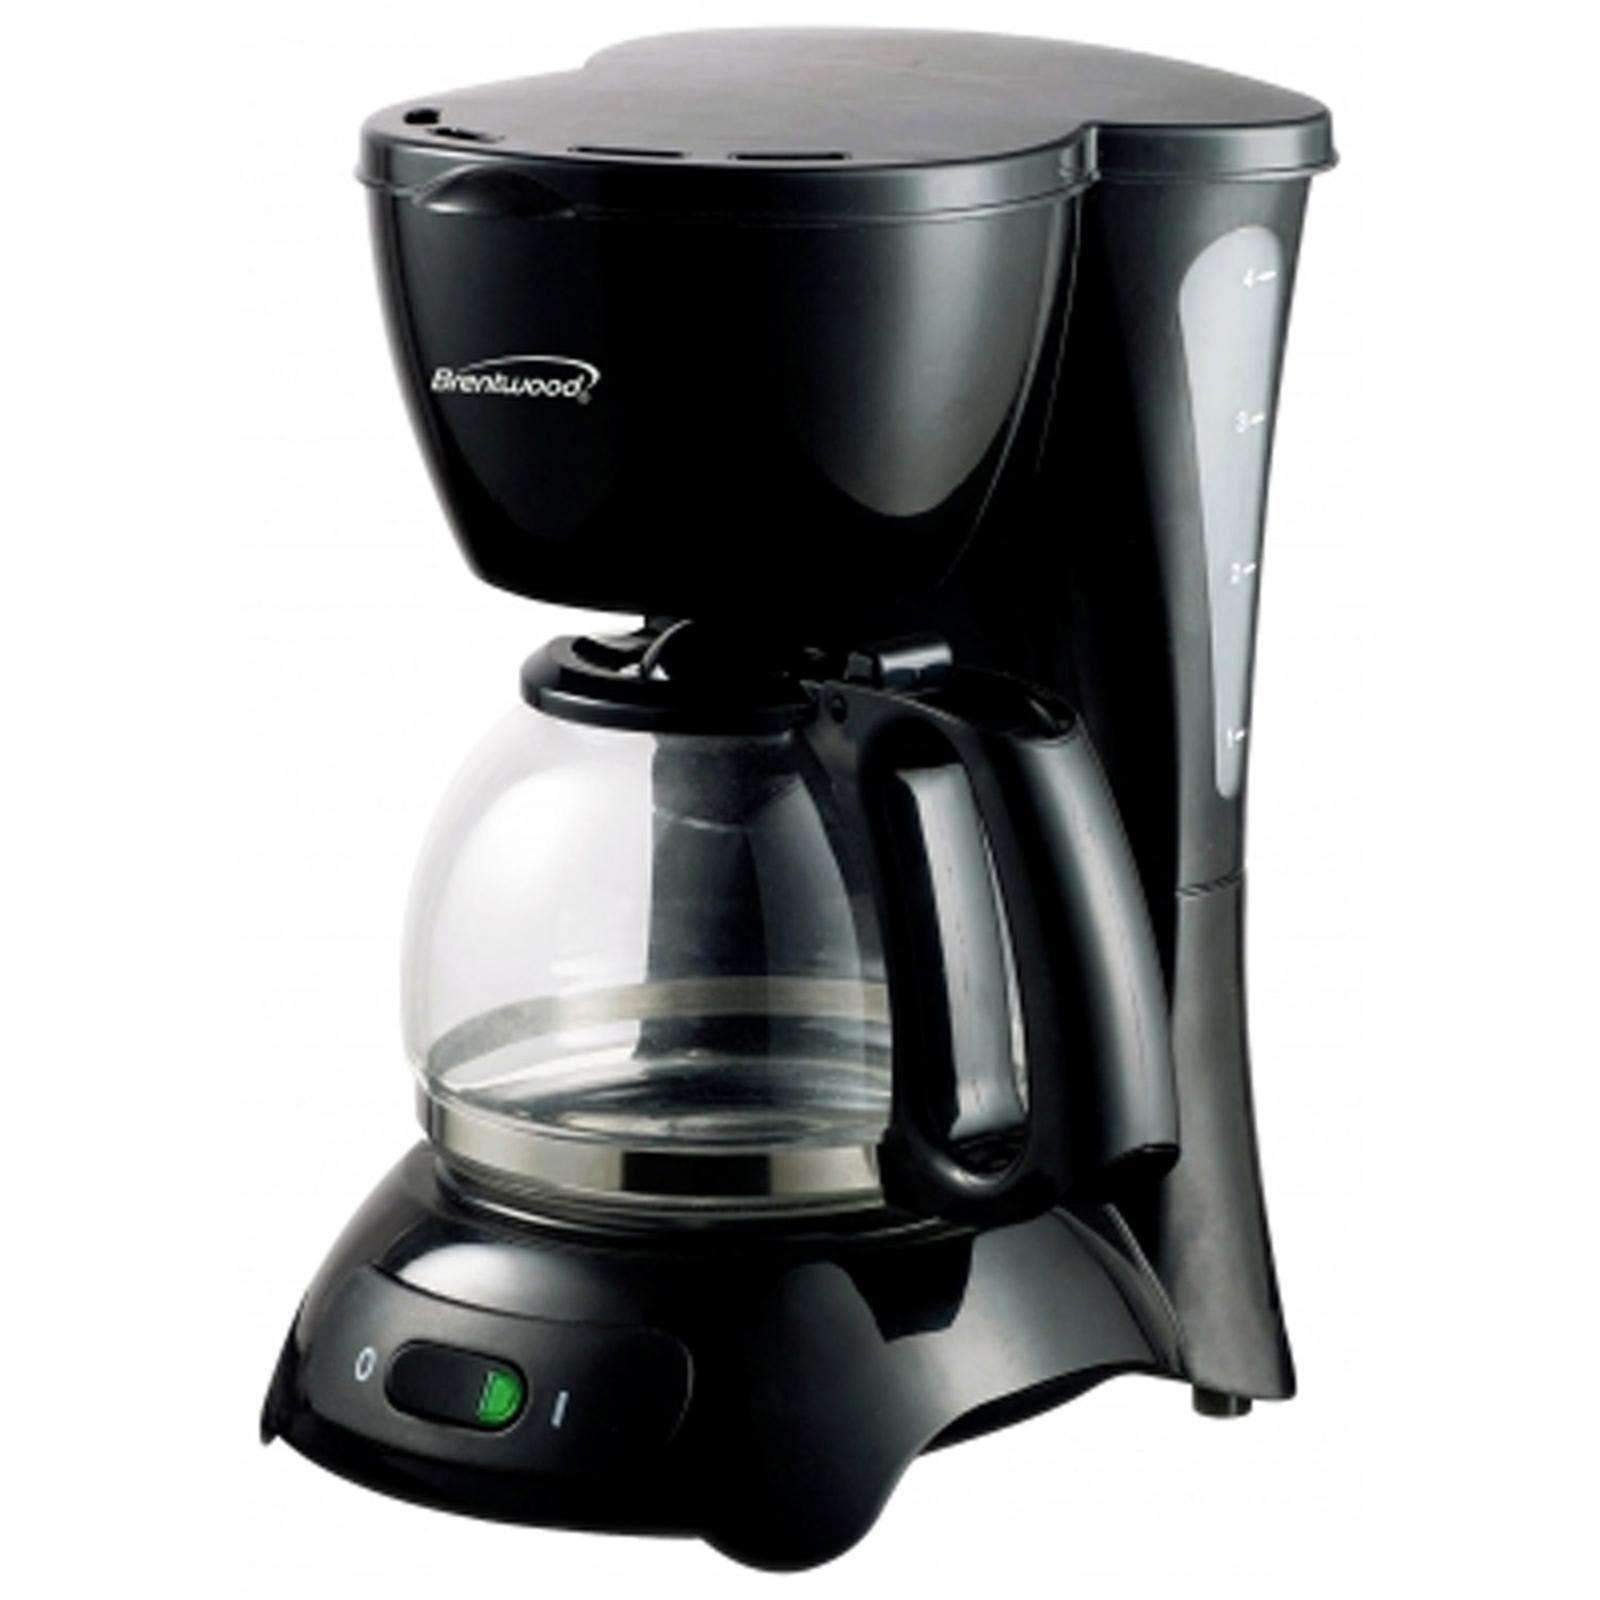 Brentwood Kitchen Appliances Brentwood 4-Cup Coffee Maker (Black)